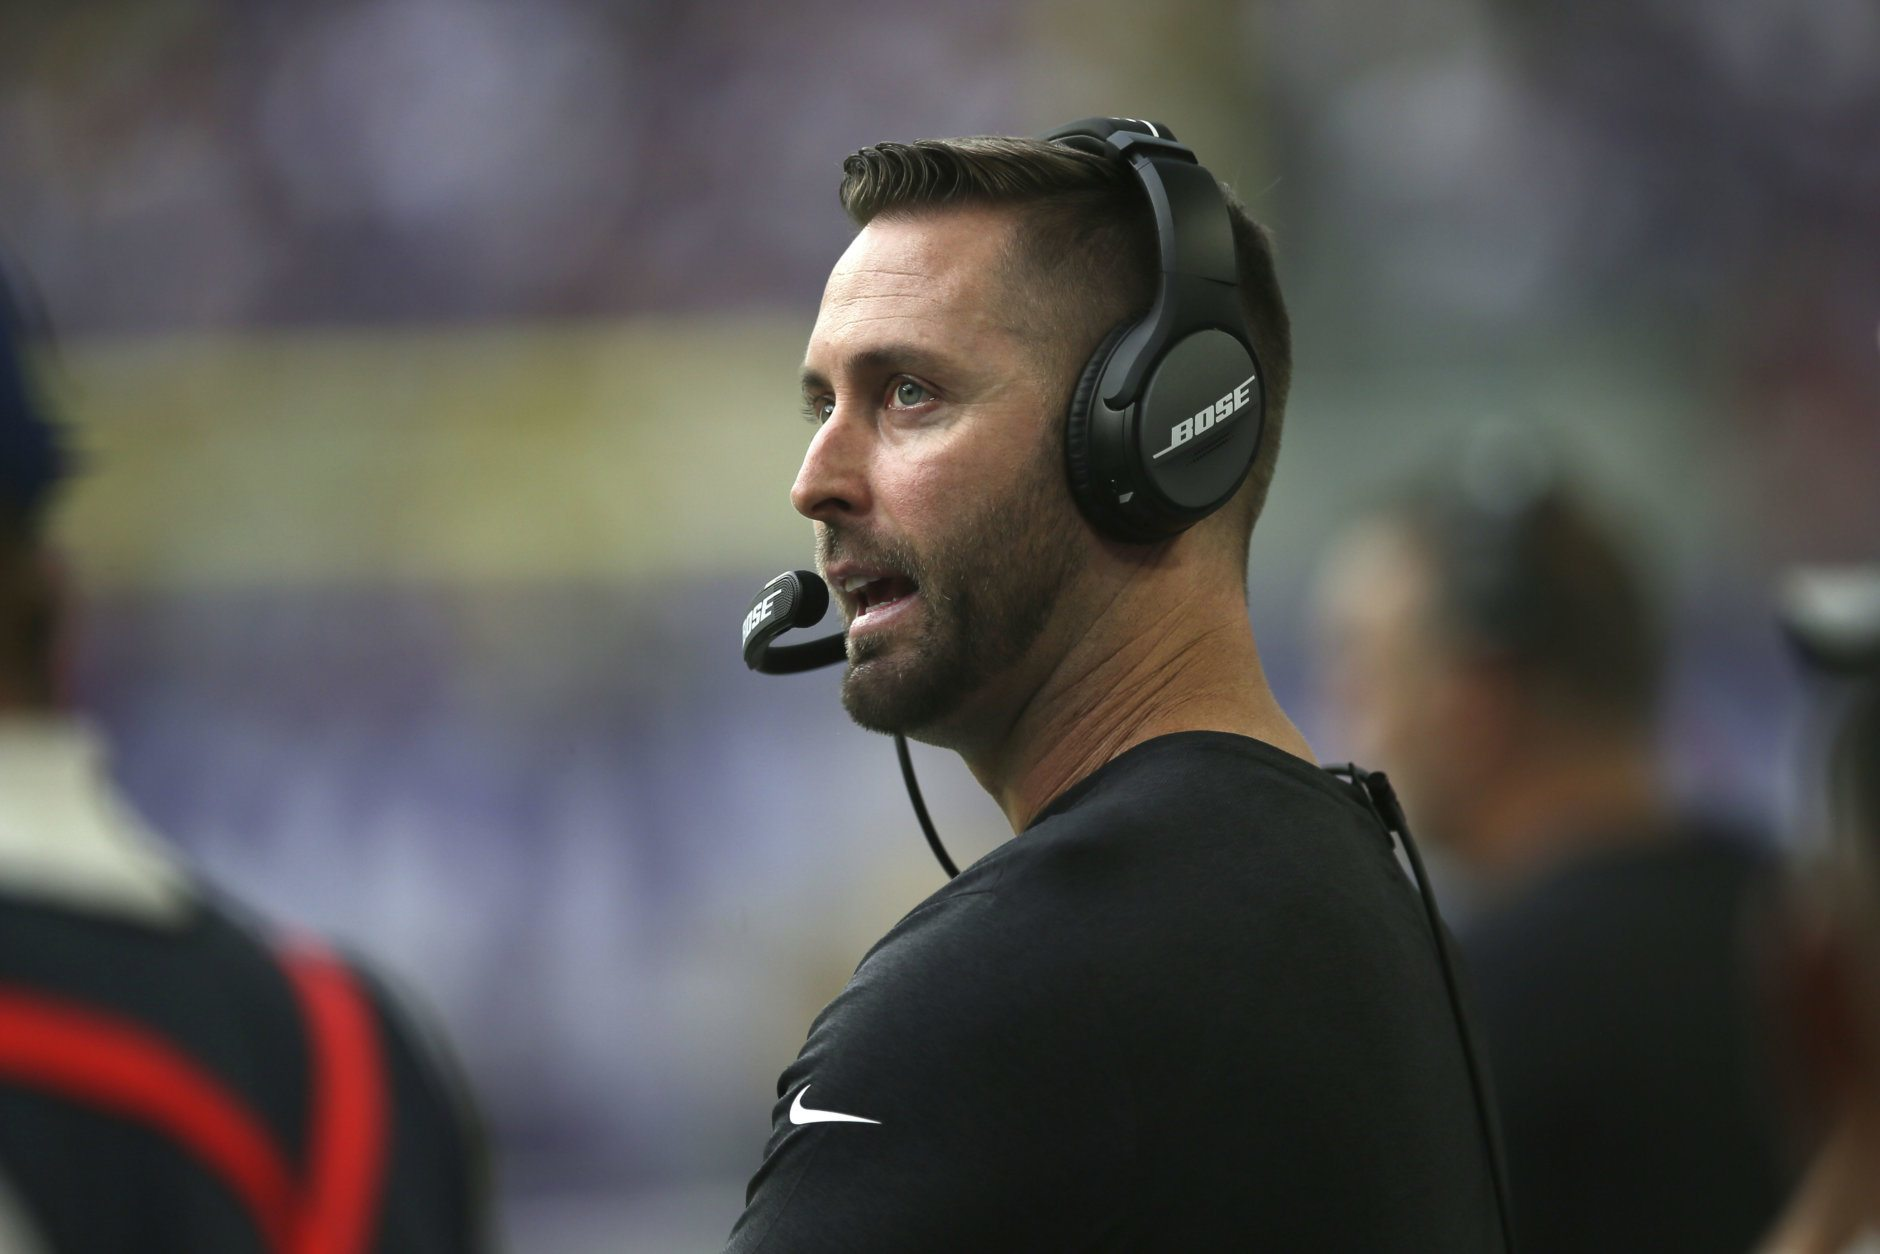 """<p><b>How will the McVay clones fare?</b></p> <p>This offseason, Kliff Kingsbury (Arizona), Matt LaFleur (Green Bay), and Zac Taylor (Cincinnati) all landed head coaching gigs (largely at the expense of<a href=""""https://wtop.com/sports-columns/2019/07/column-its-past-time-to-give-minority-football-coaches-their-due/"""" target=""""_blank"""" rel=""""noopener noreferrer"""" data-saferedirecturl=""""https://www.google.com/url?q=https://wtop.com/sports-columns/2019/07/column-its-past-time-to-give-minority-football-coaches-their-due/&amp;source=gmail&amp;ust=1567097099847000&amp;usg=AFQjCNH93RjN6zdHhz0IsSmrBRTG5A54kw"""">more qualified minority candidates</a>) because they either worked with or vaguely resemble coaching wunderkind Sean McVay. Will any of them find the immediate success McVay has enjoyed in Los Angeles or will this misguided fad backfire badly?</p>"""